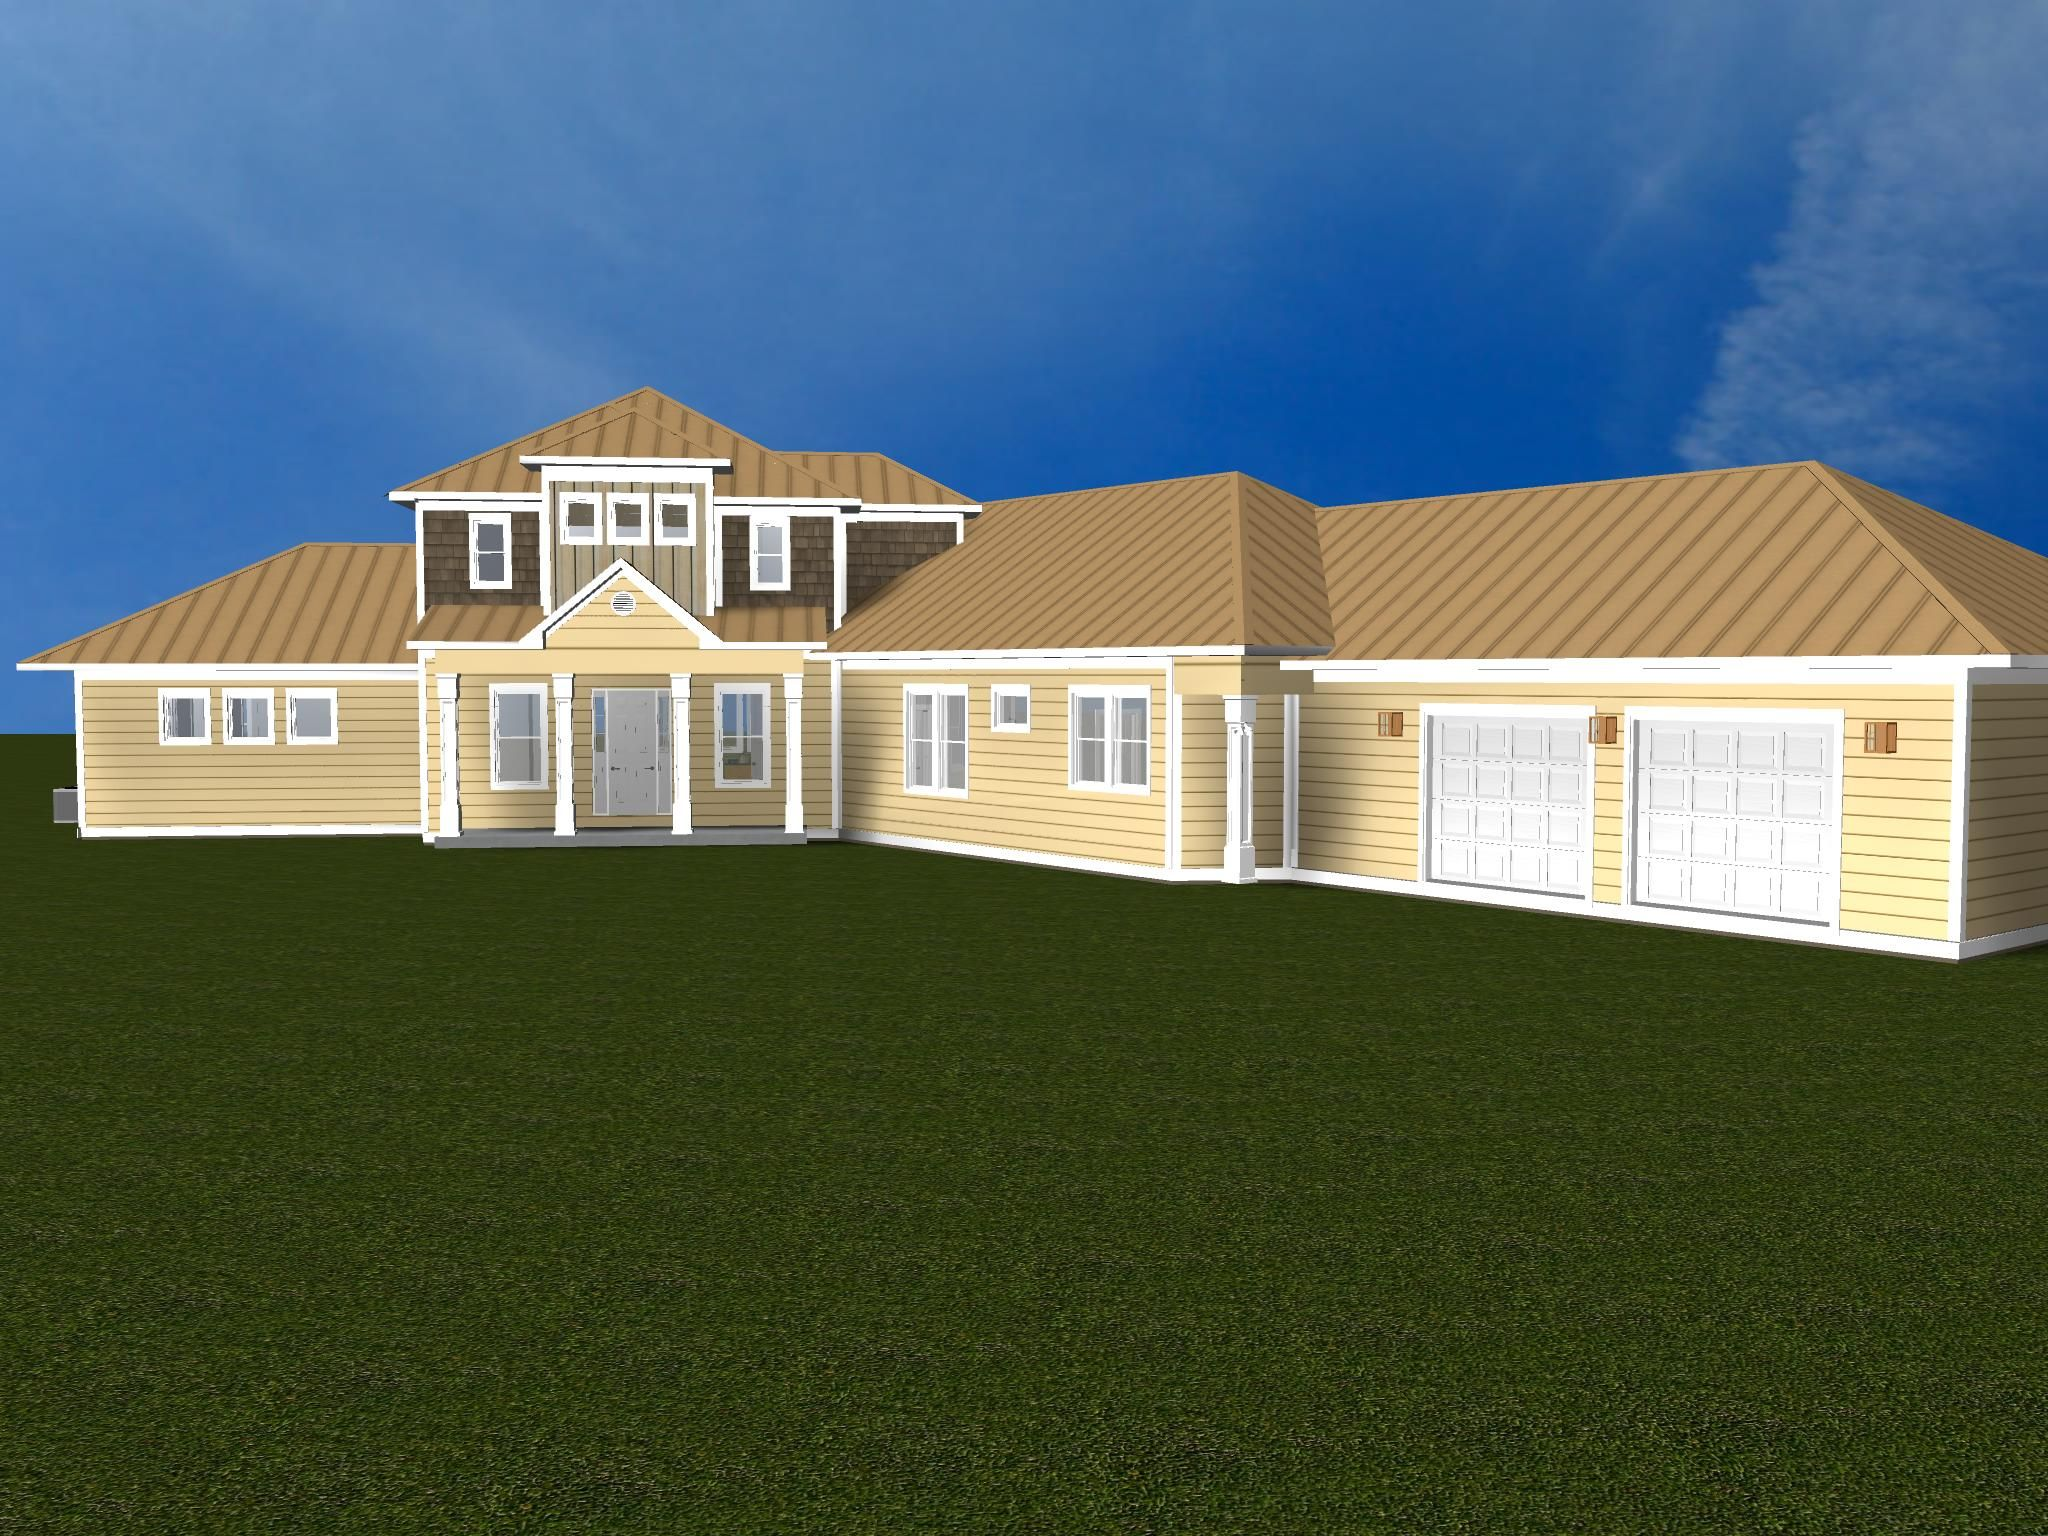 Seidel remodel rendering by Acorn Fine Homes